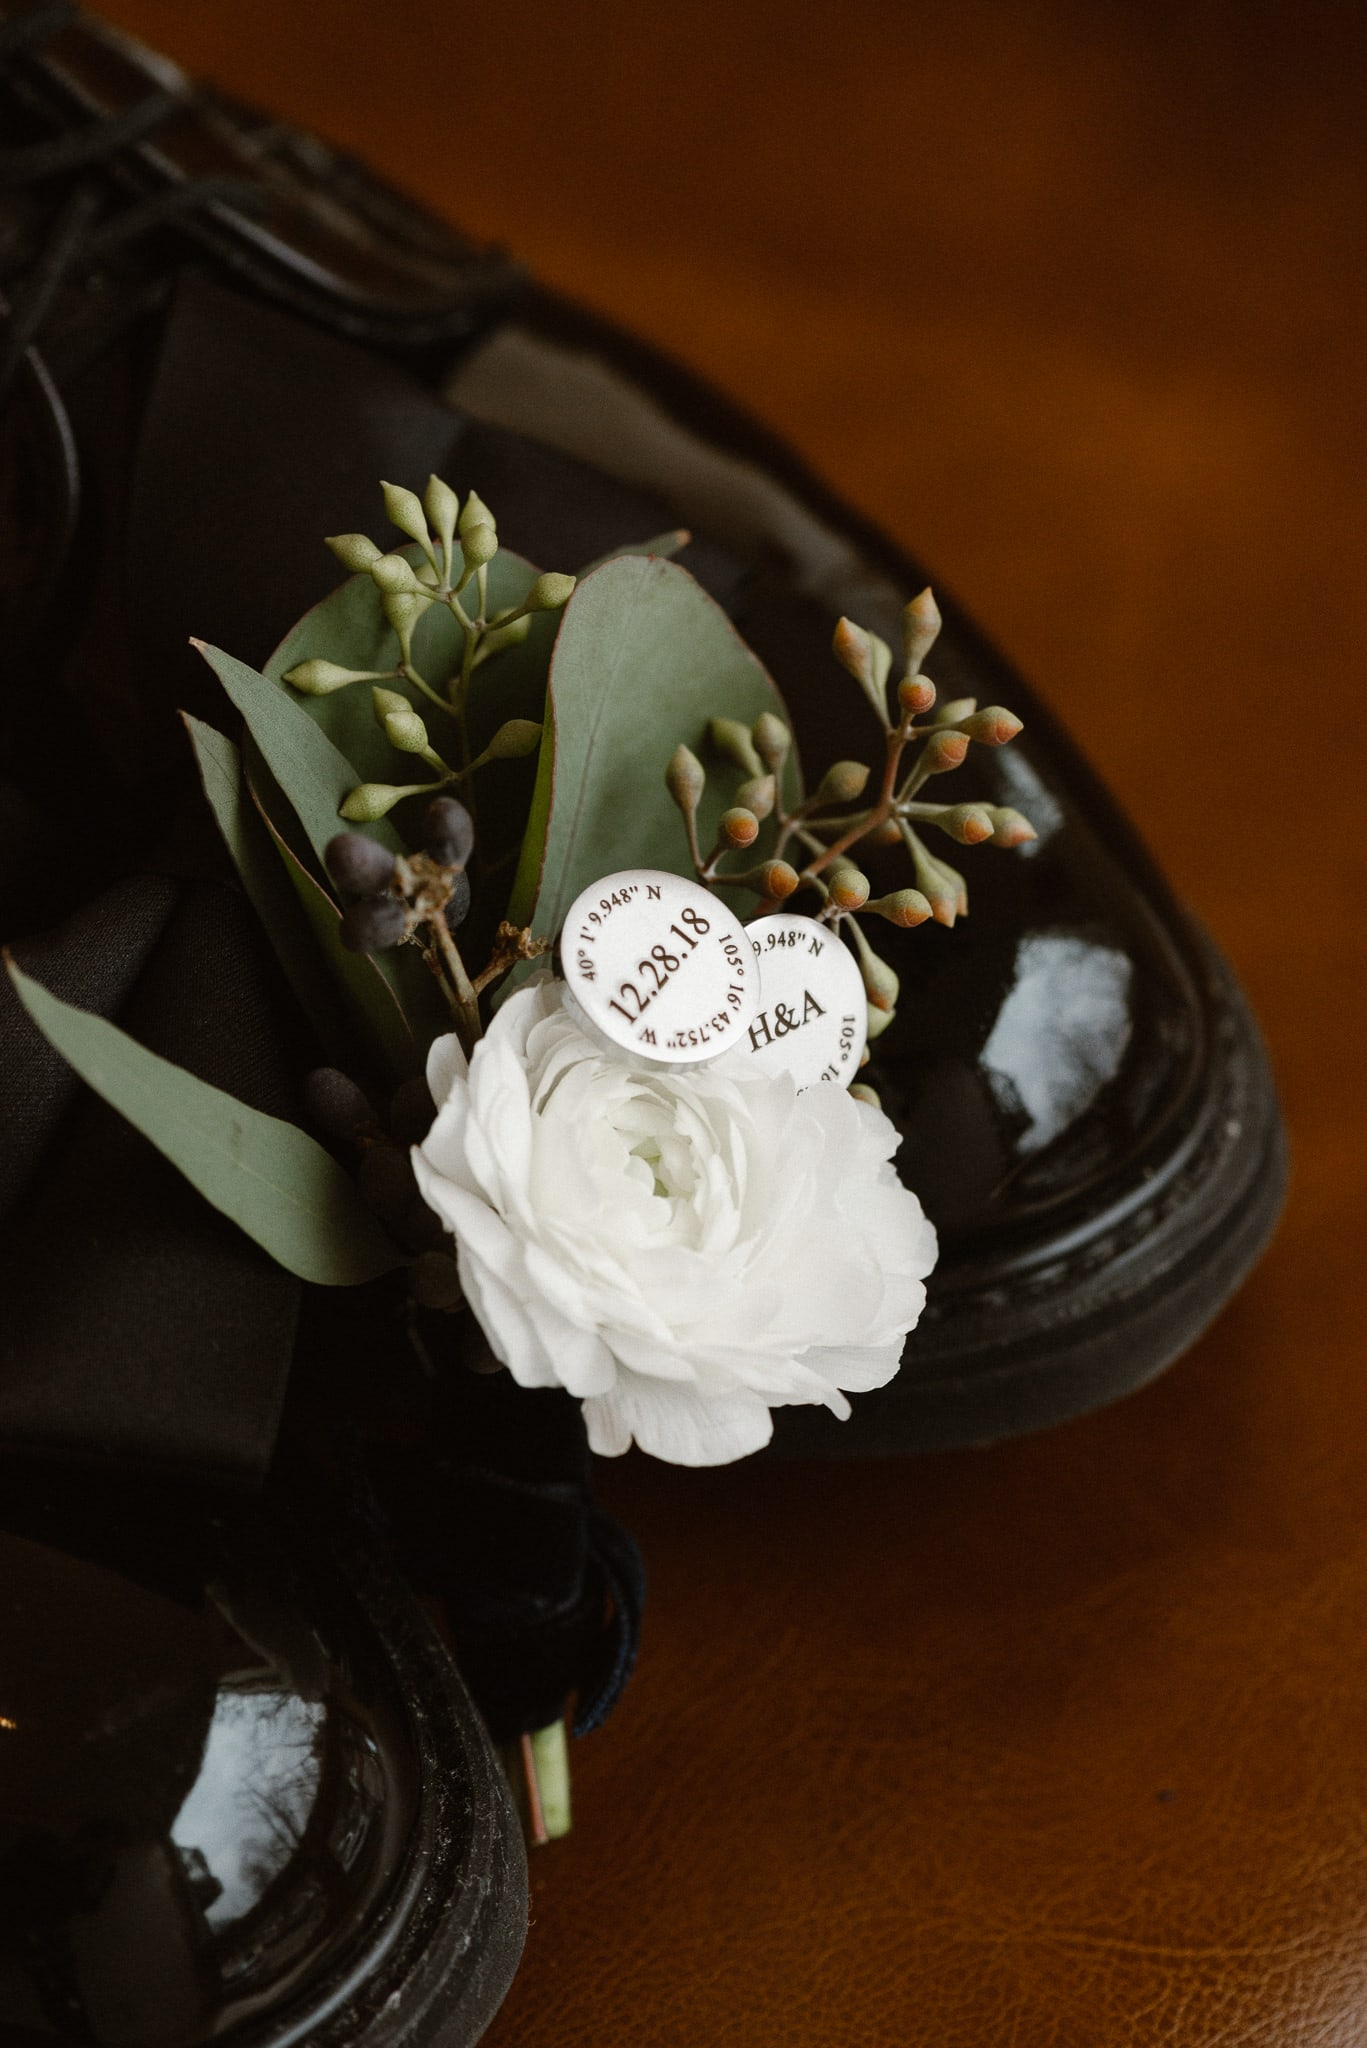 Rembrandt Yard wedding photographer, Boulder wedding photographer, Colorado Jewish wedding, groom's cufflinks with wedding date and coordinates plus shoes and boutonniere